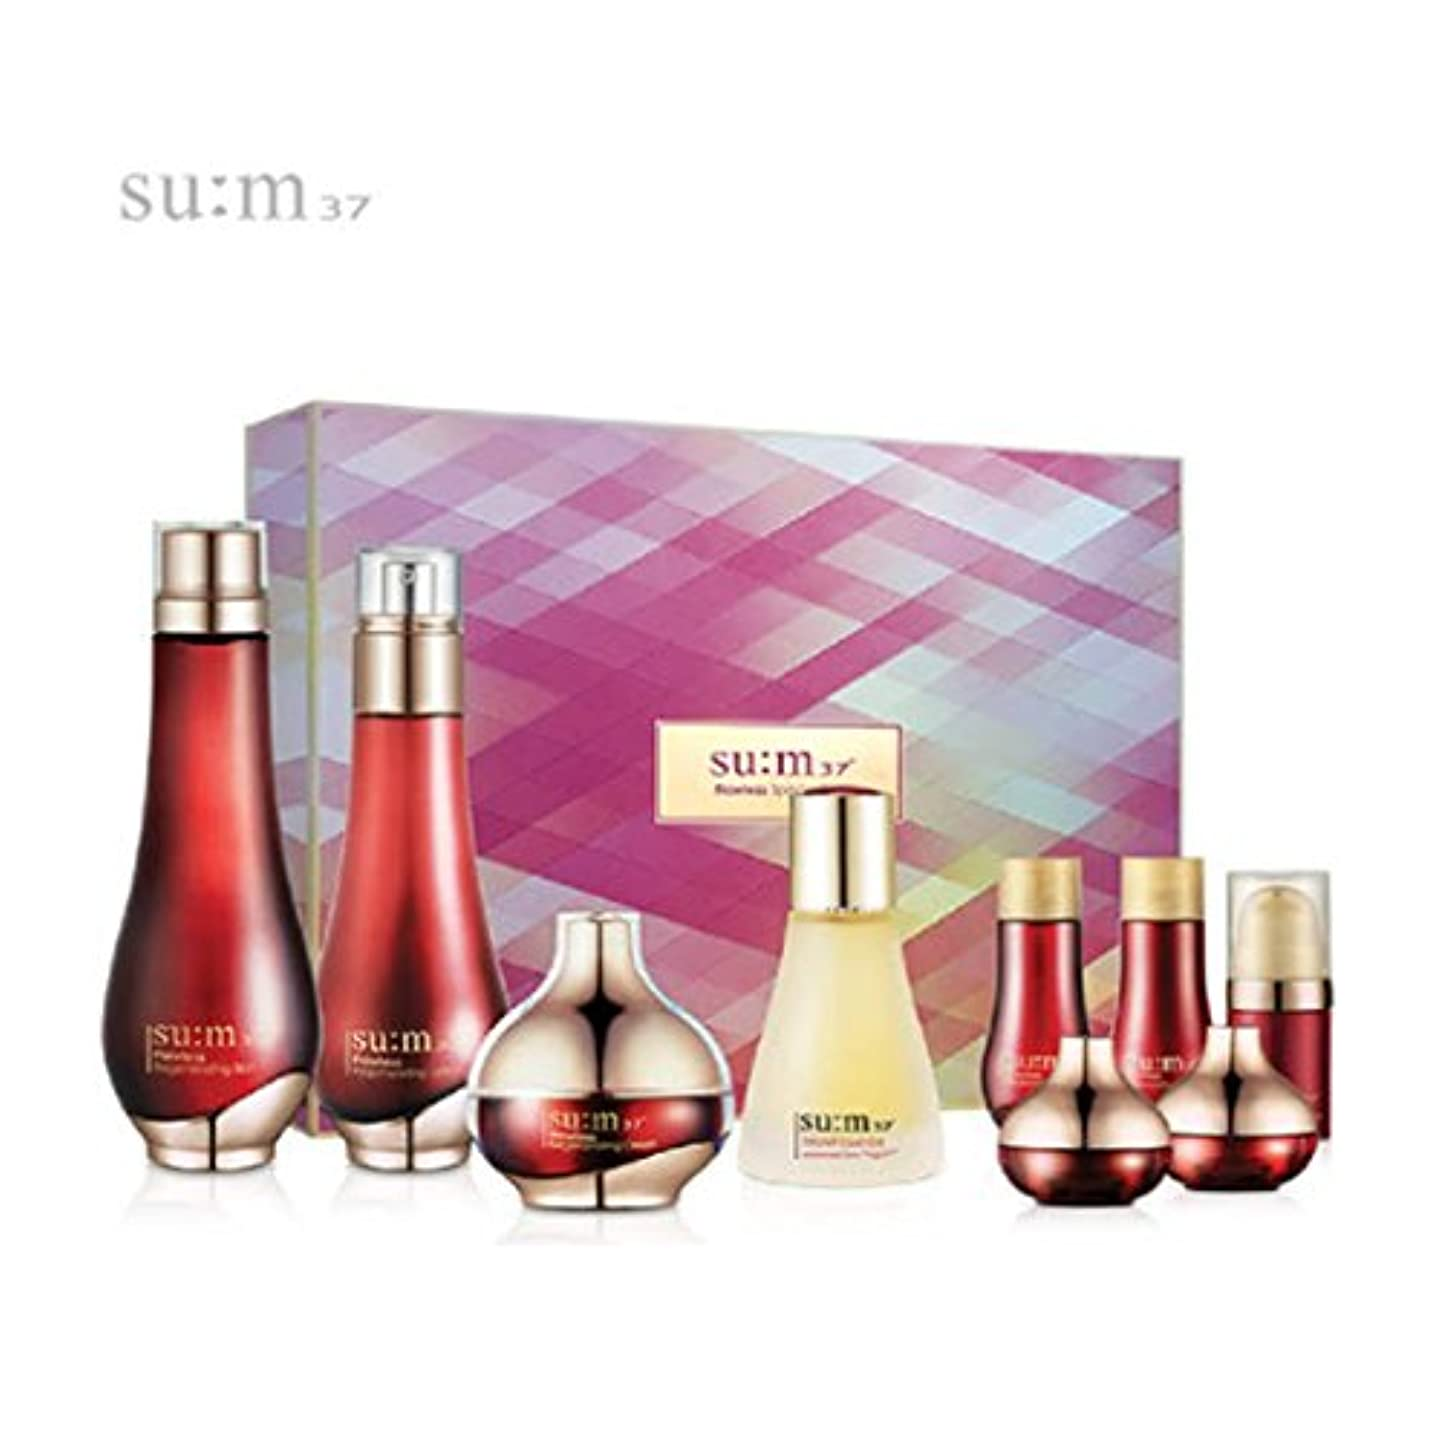 [su:m37/スム37°]Flawless 3pcs Special Limited Skincare Set/フローレス3種のスキンケアセット + [Sample Gift](海外直送品)